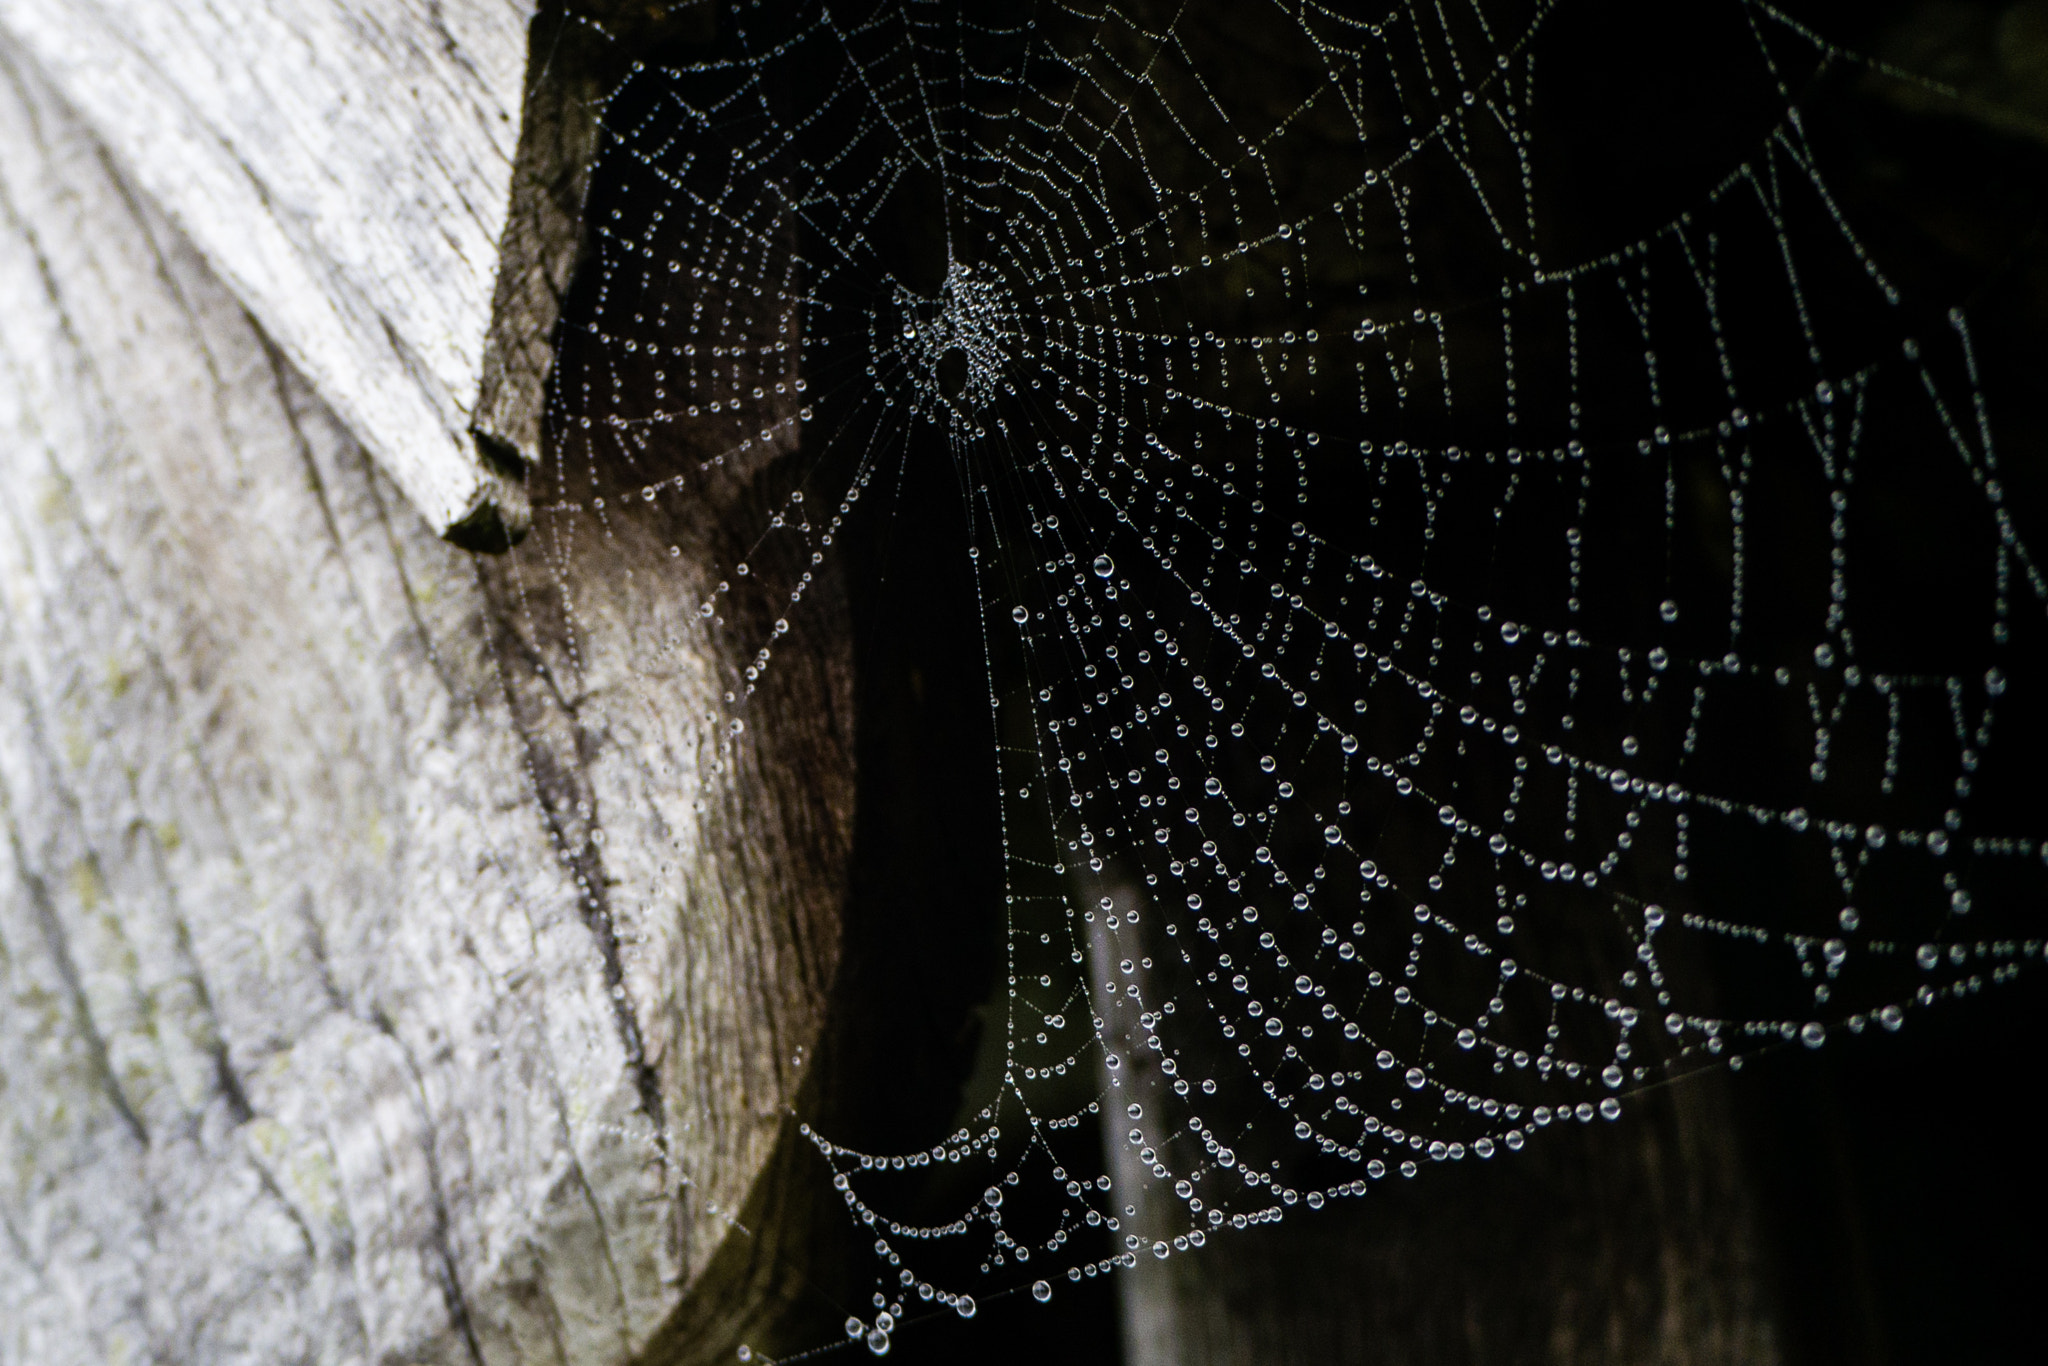 Photograph Spiderweb Pearls by Matt Goodman on 500px